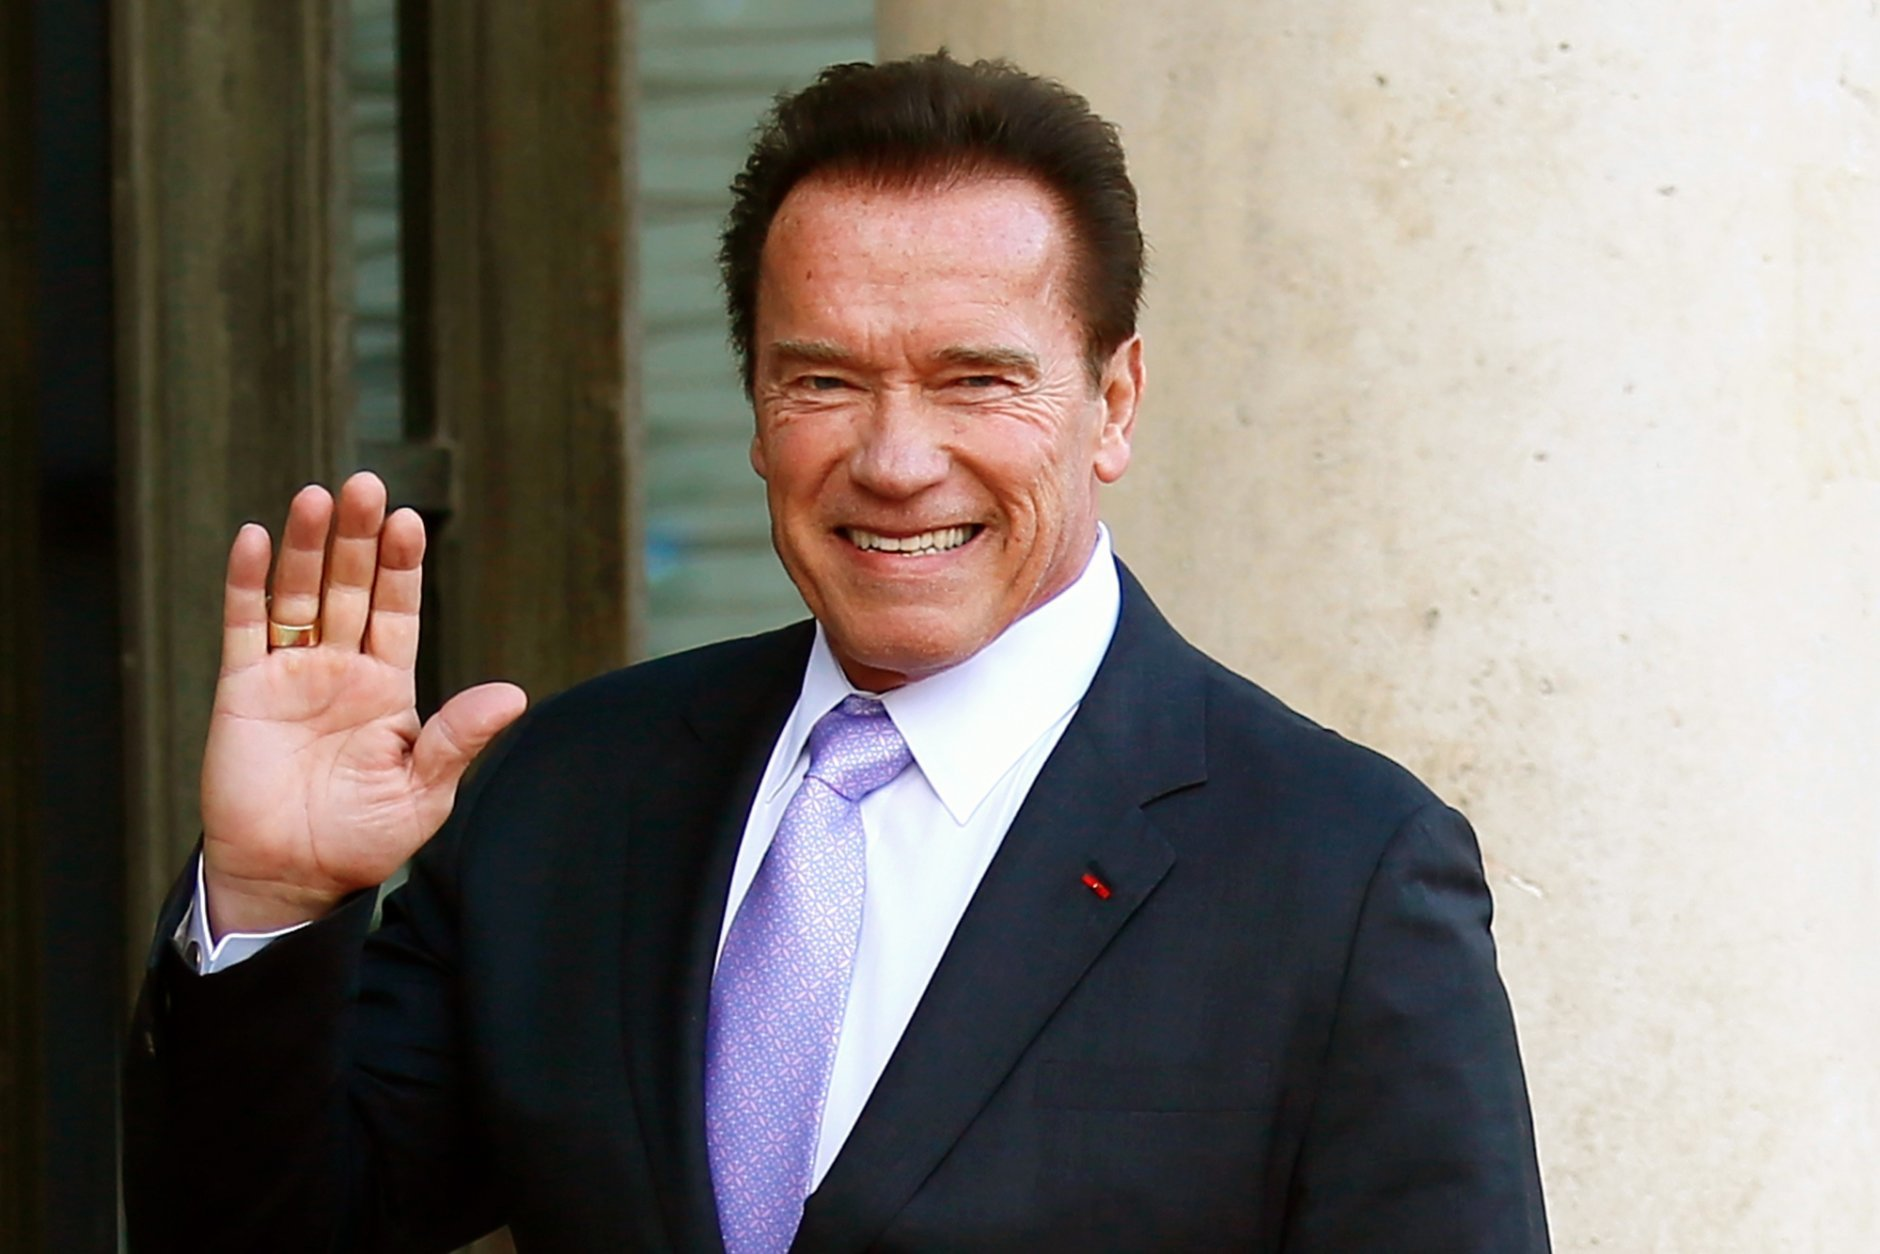 FILE - In this Dec. 12, 2017 file photo, Arnold Schwarzenegger waves as he arrives at the Elysee Palace prior to a meeting on climate change in Paris. Schwarzenegger is recovering in a Los Angeles hospital after undergoing heart surgery. He had a scheduled procedure to replace a pulmonic valve on Thursday, March 29, 2018, according to Schwarzenegger's spokesman. He is in stable condition. (AP Photo/Francois Mori, File)